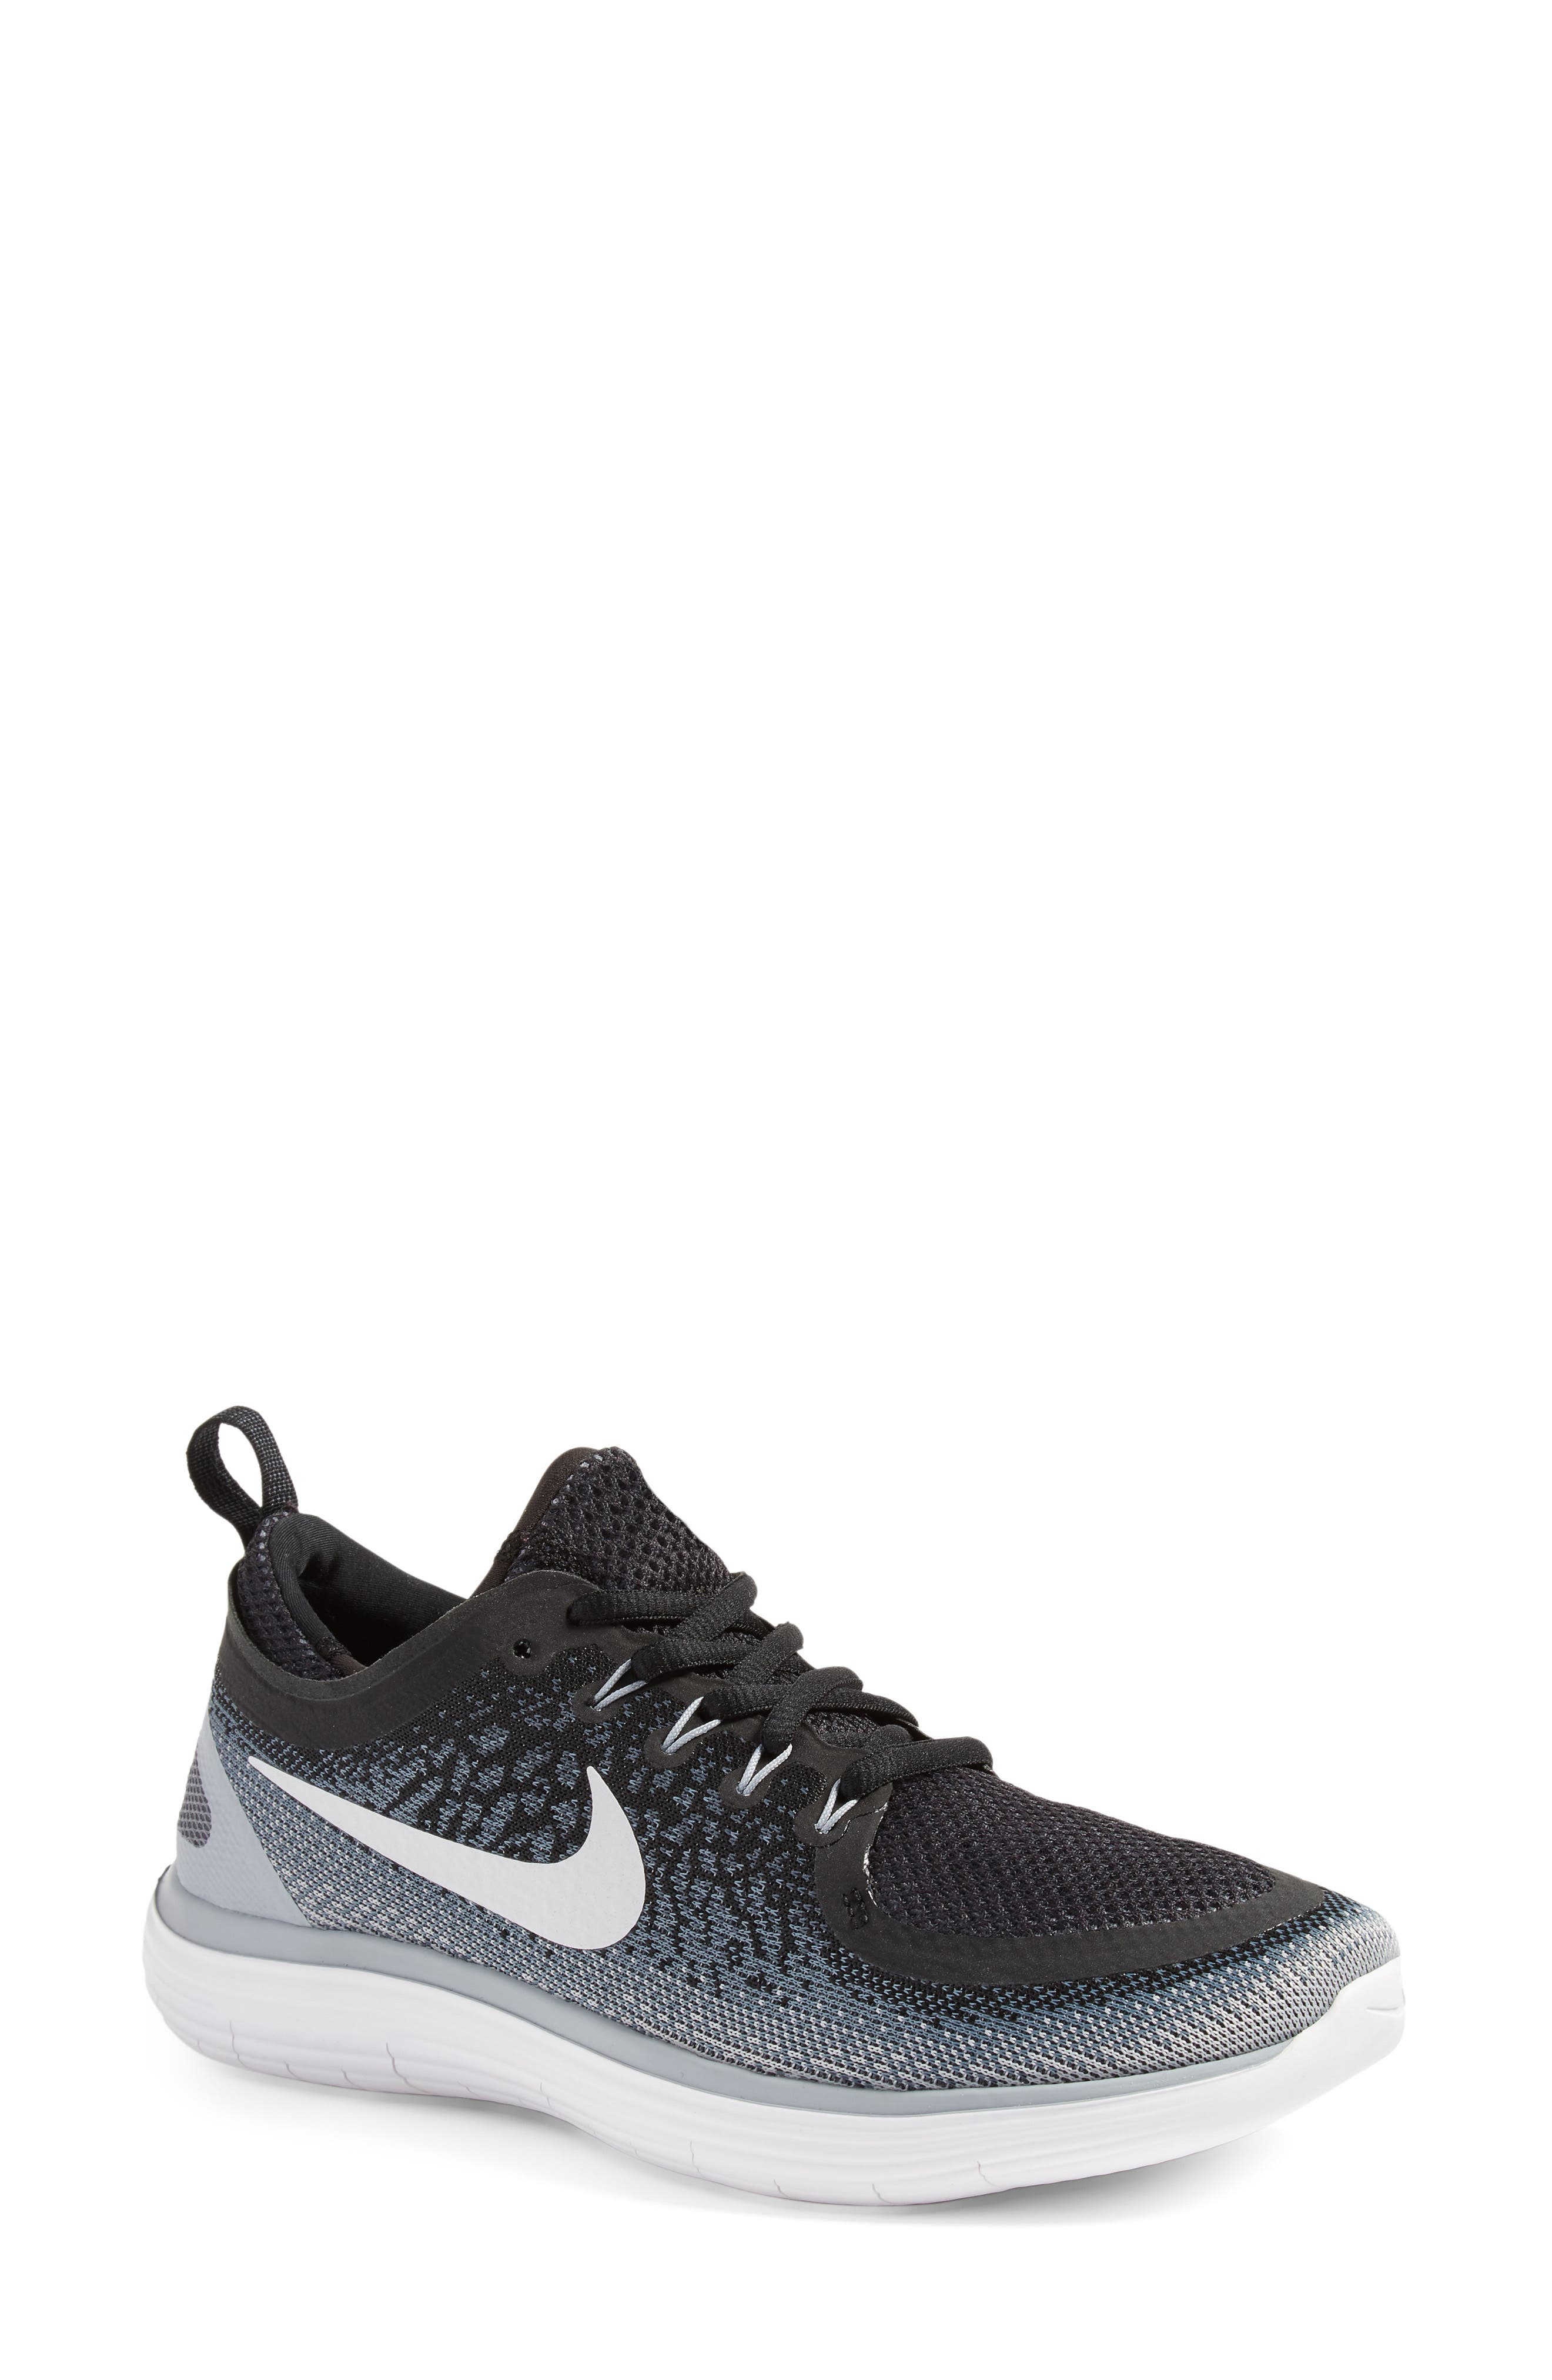 Free Run Distance 2 Running Shoe,                             Main thumbnail 1, color,                             001